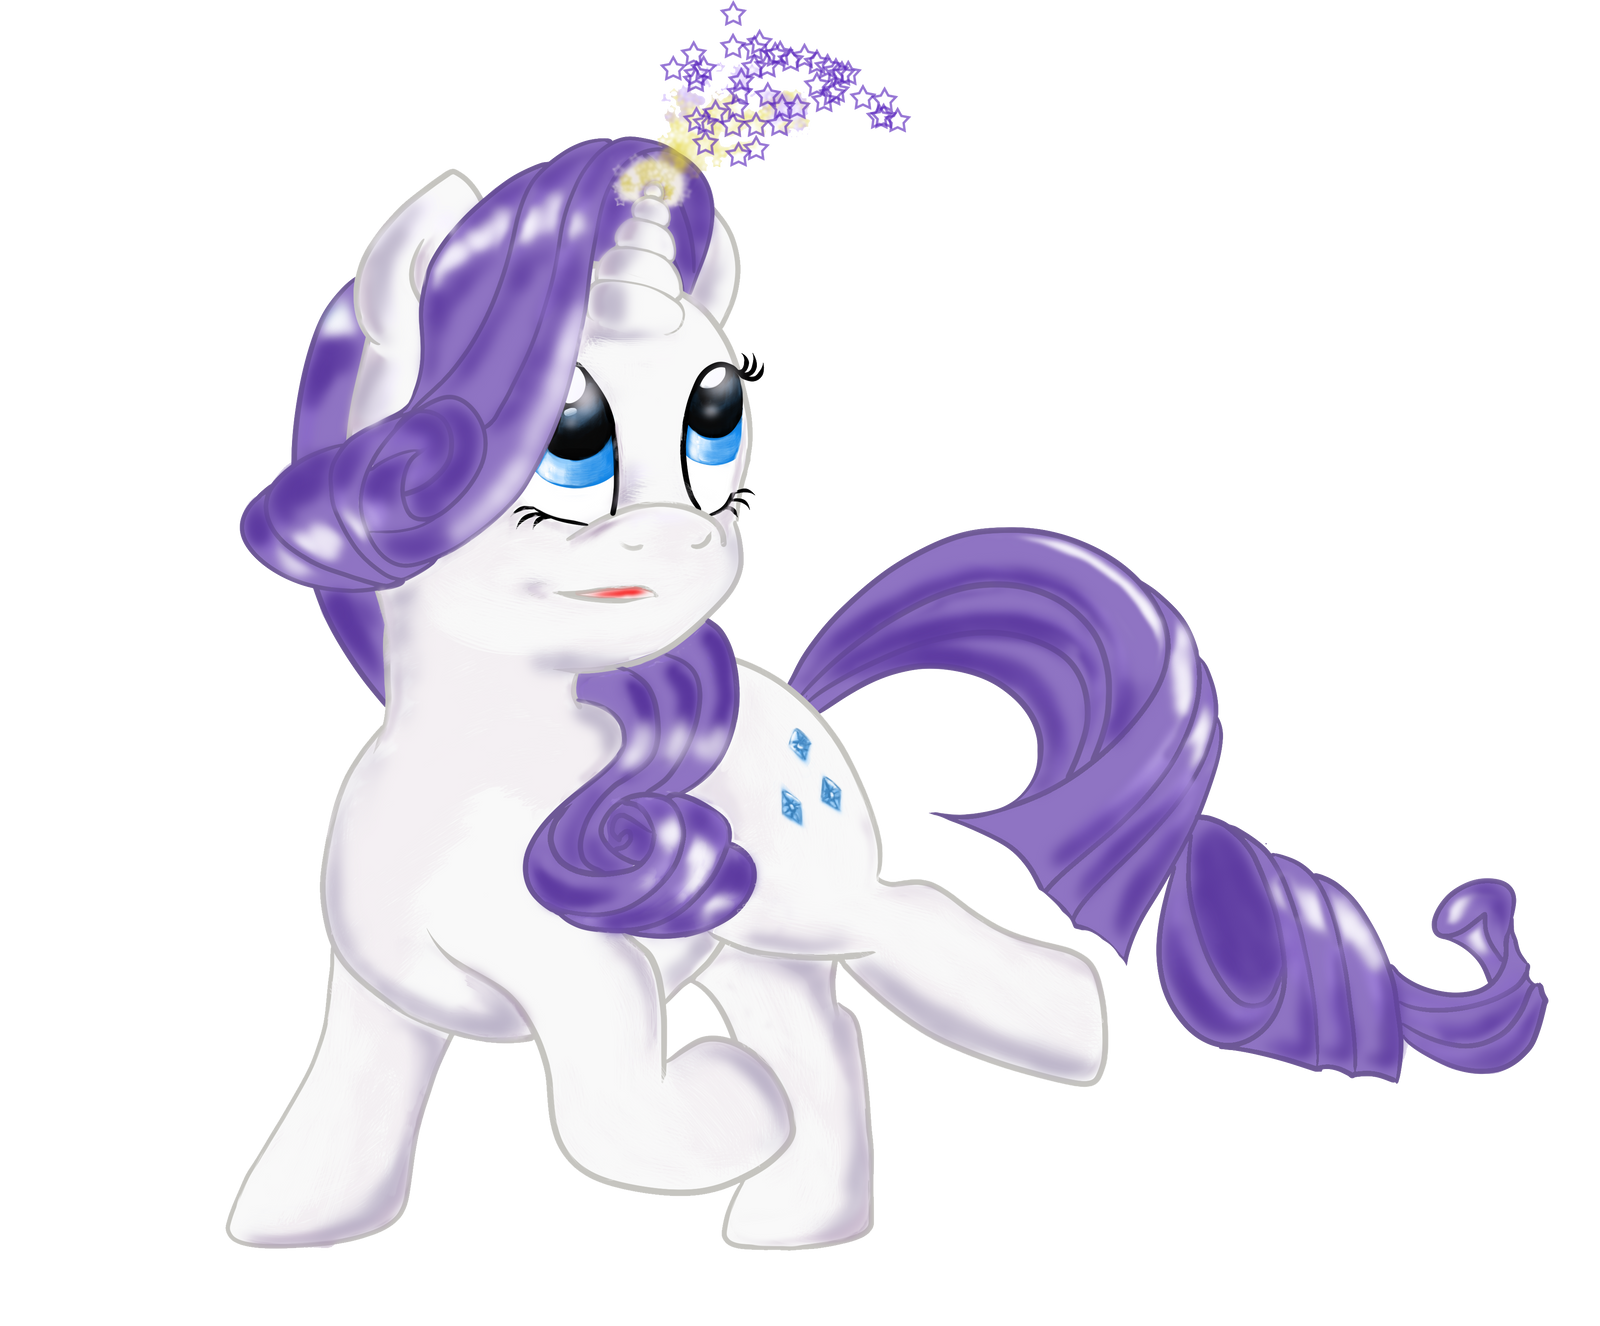 Chibi Rarity My Little Pony by aprilj0313 on DeviantArt